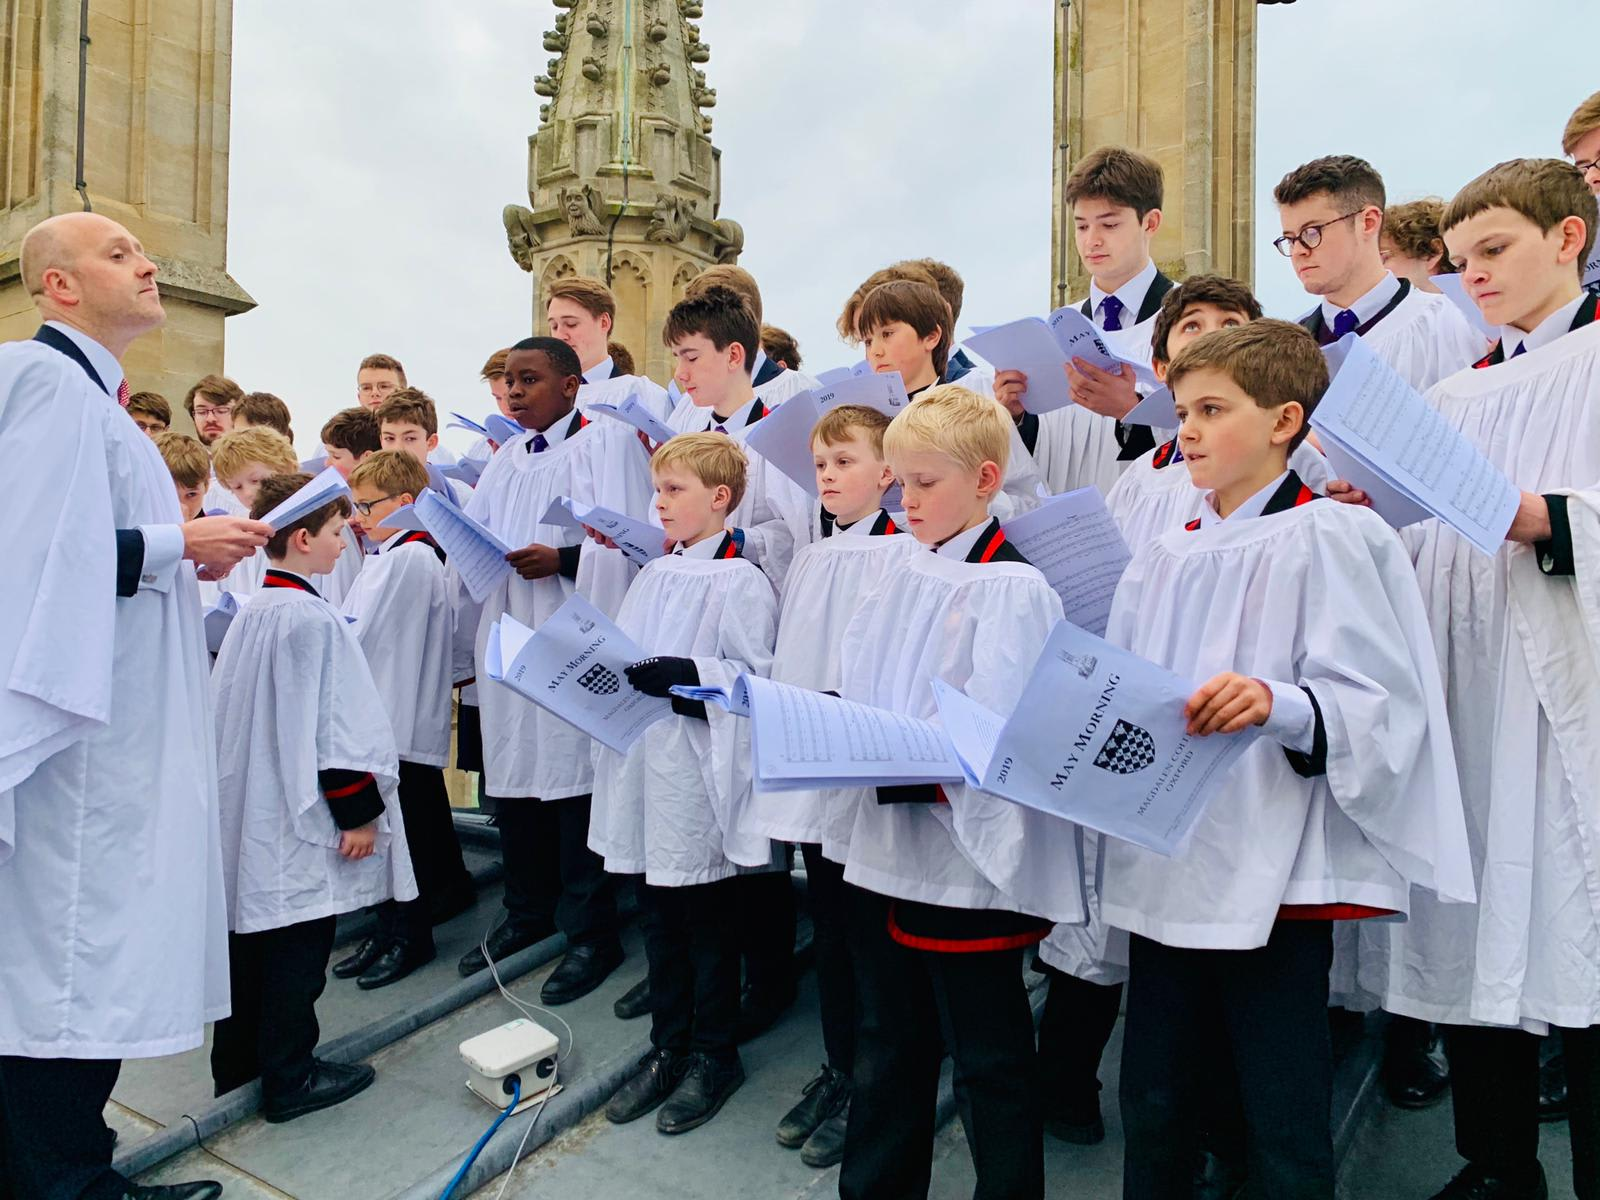 Choir on tower May Morning 19 ywcmse